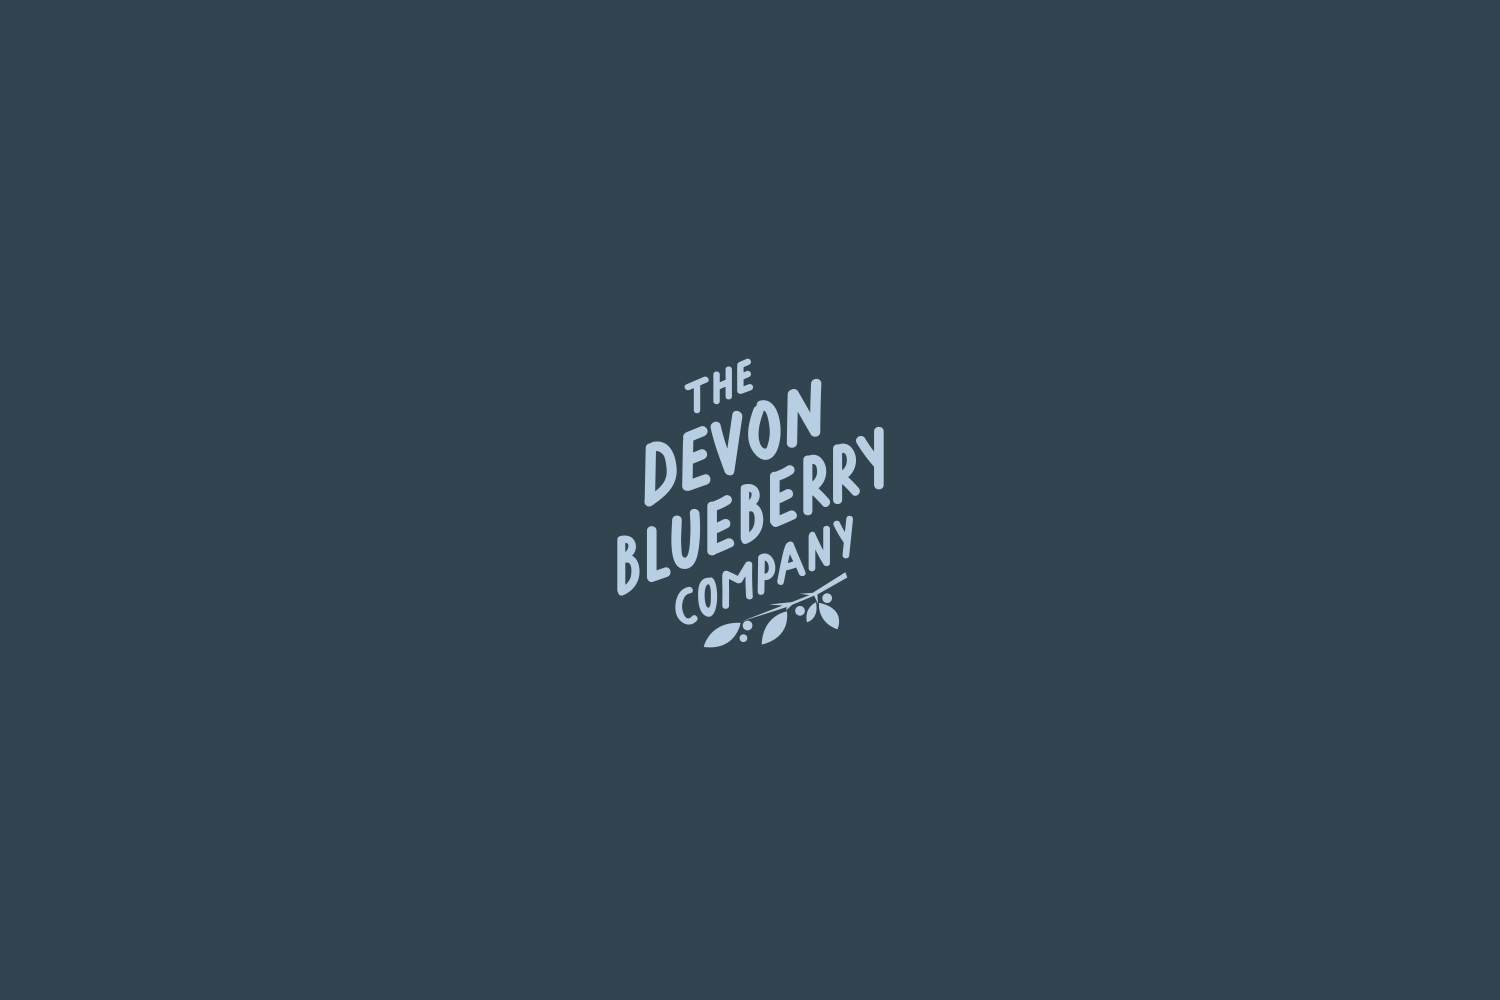 12.Becca_Allen_The_Devon_Blueberry_Company_Logo.jpg